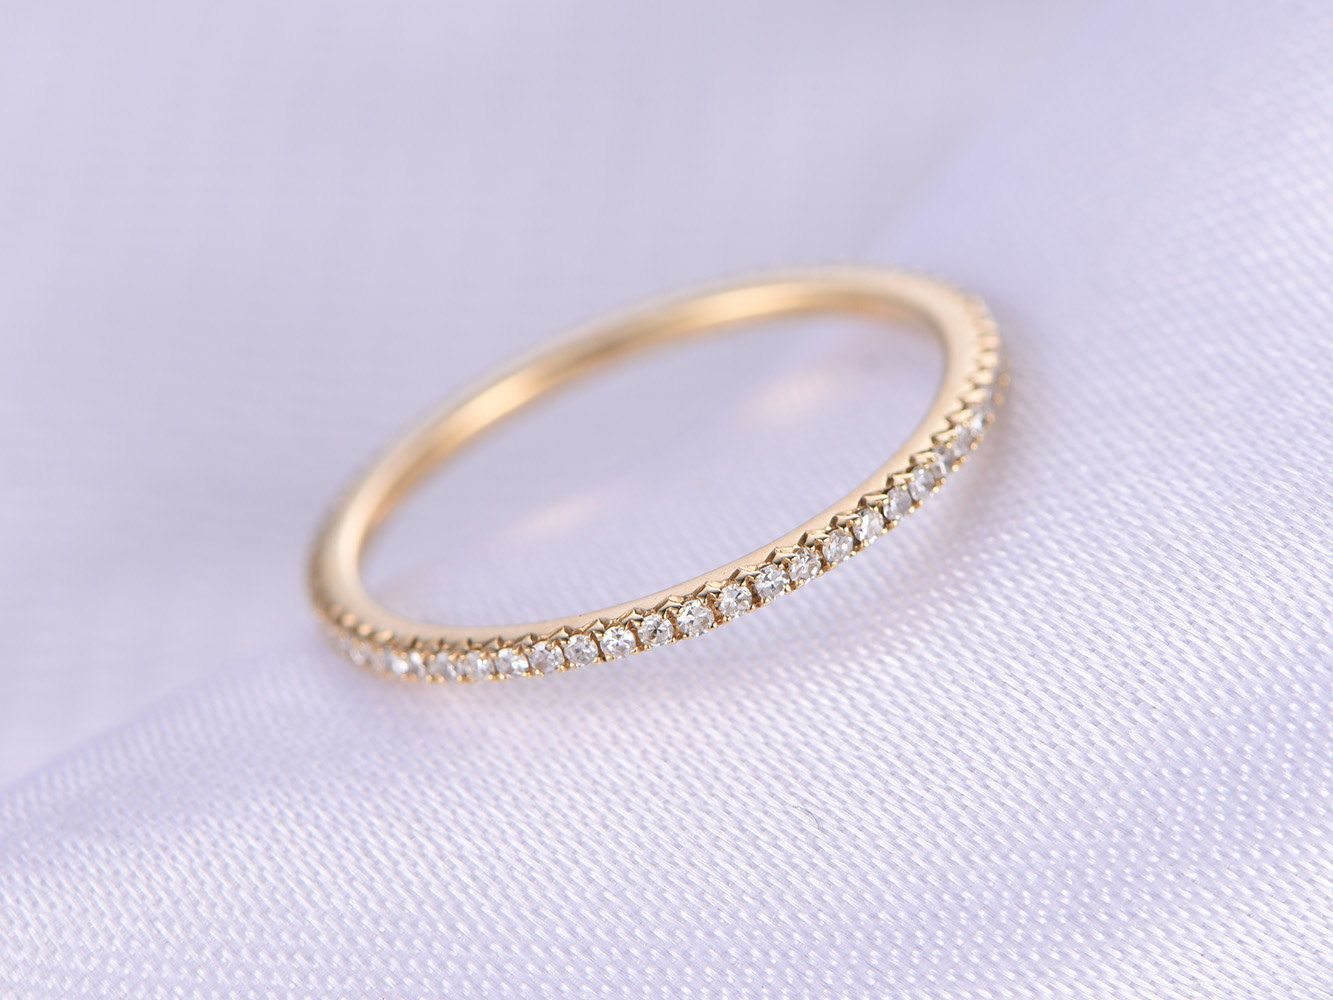 Full Eternity Diamond Thin Wedding Ring Anniversary Ring 14k Yellow Gold Infinity Ring Matching Band Personalized For Her Him Custom Ring Gold Infinity Ring Thin Wedding Ring Titanium Wedding Rings